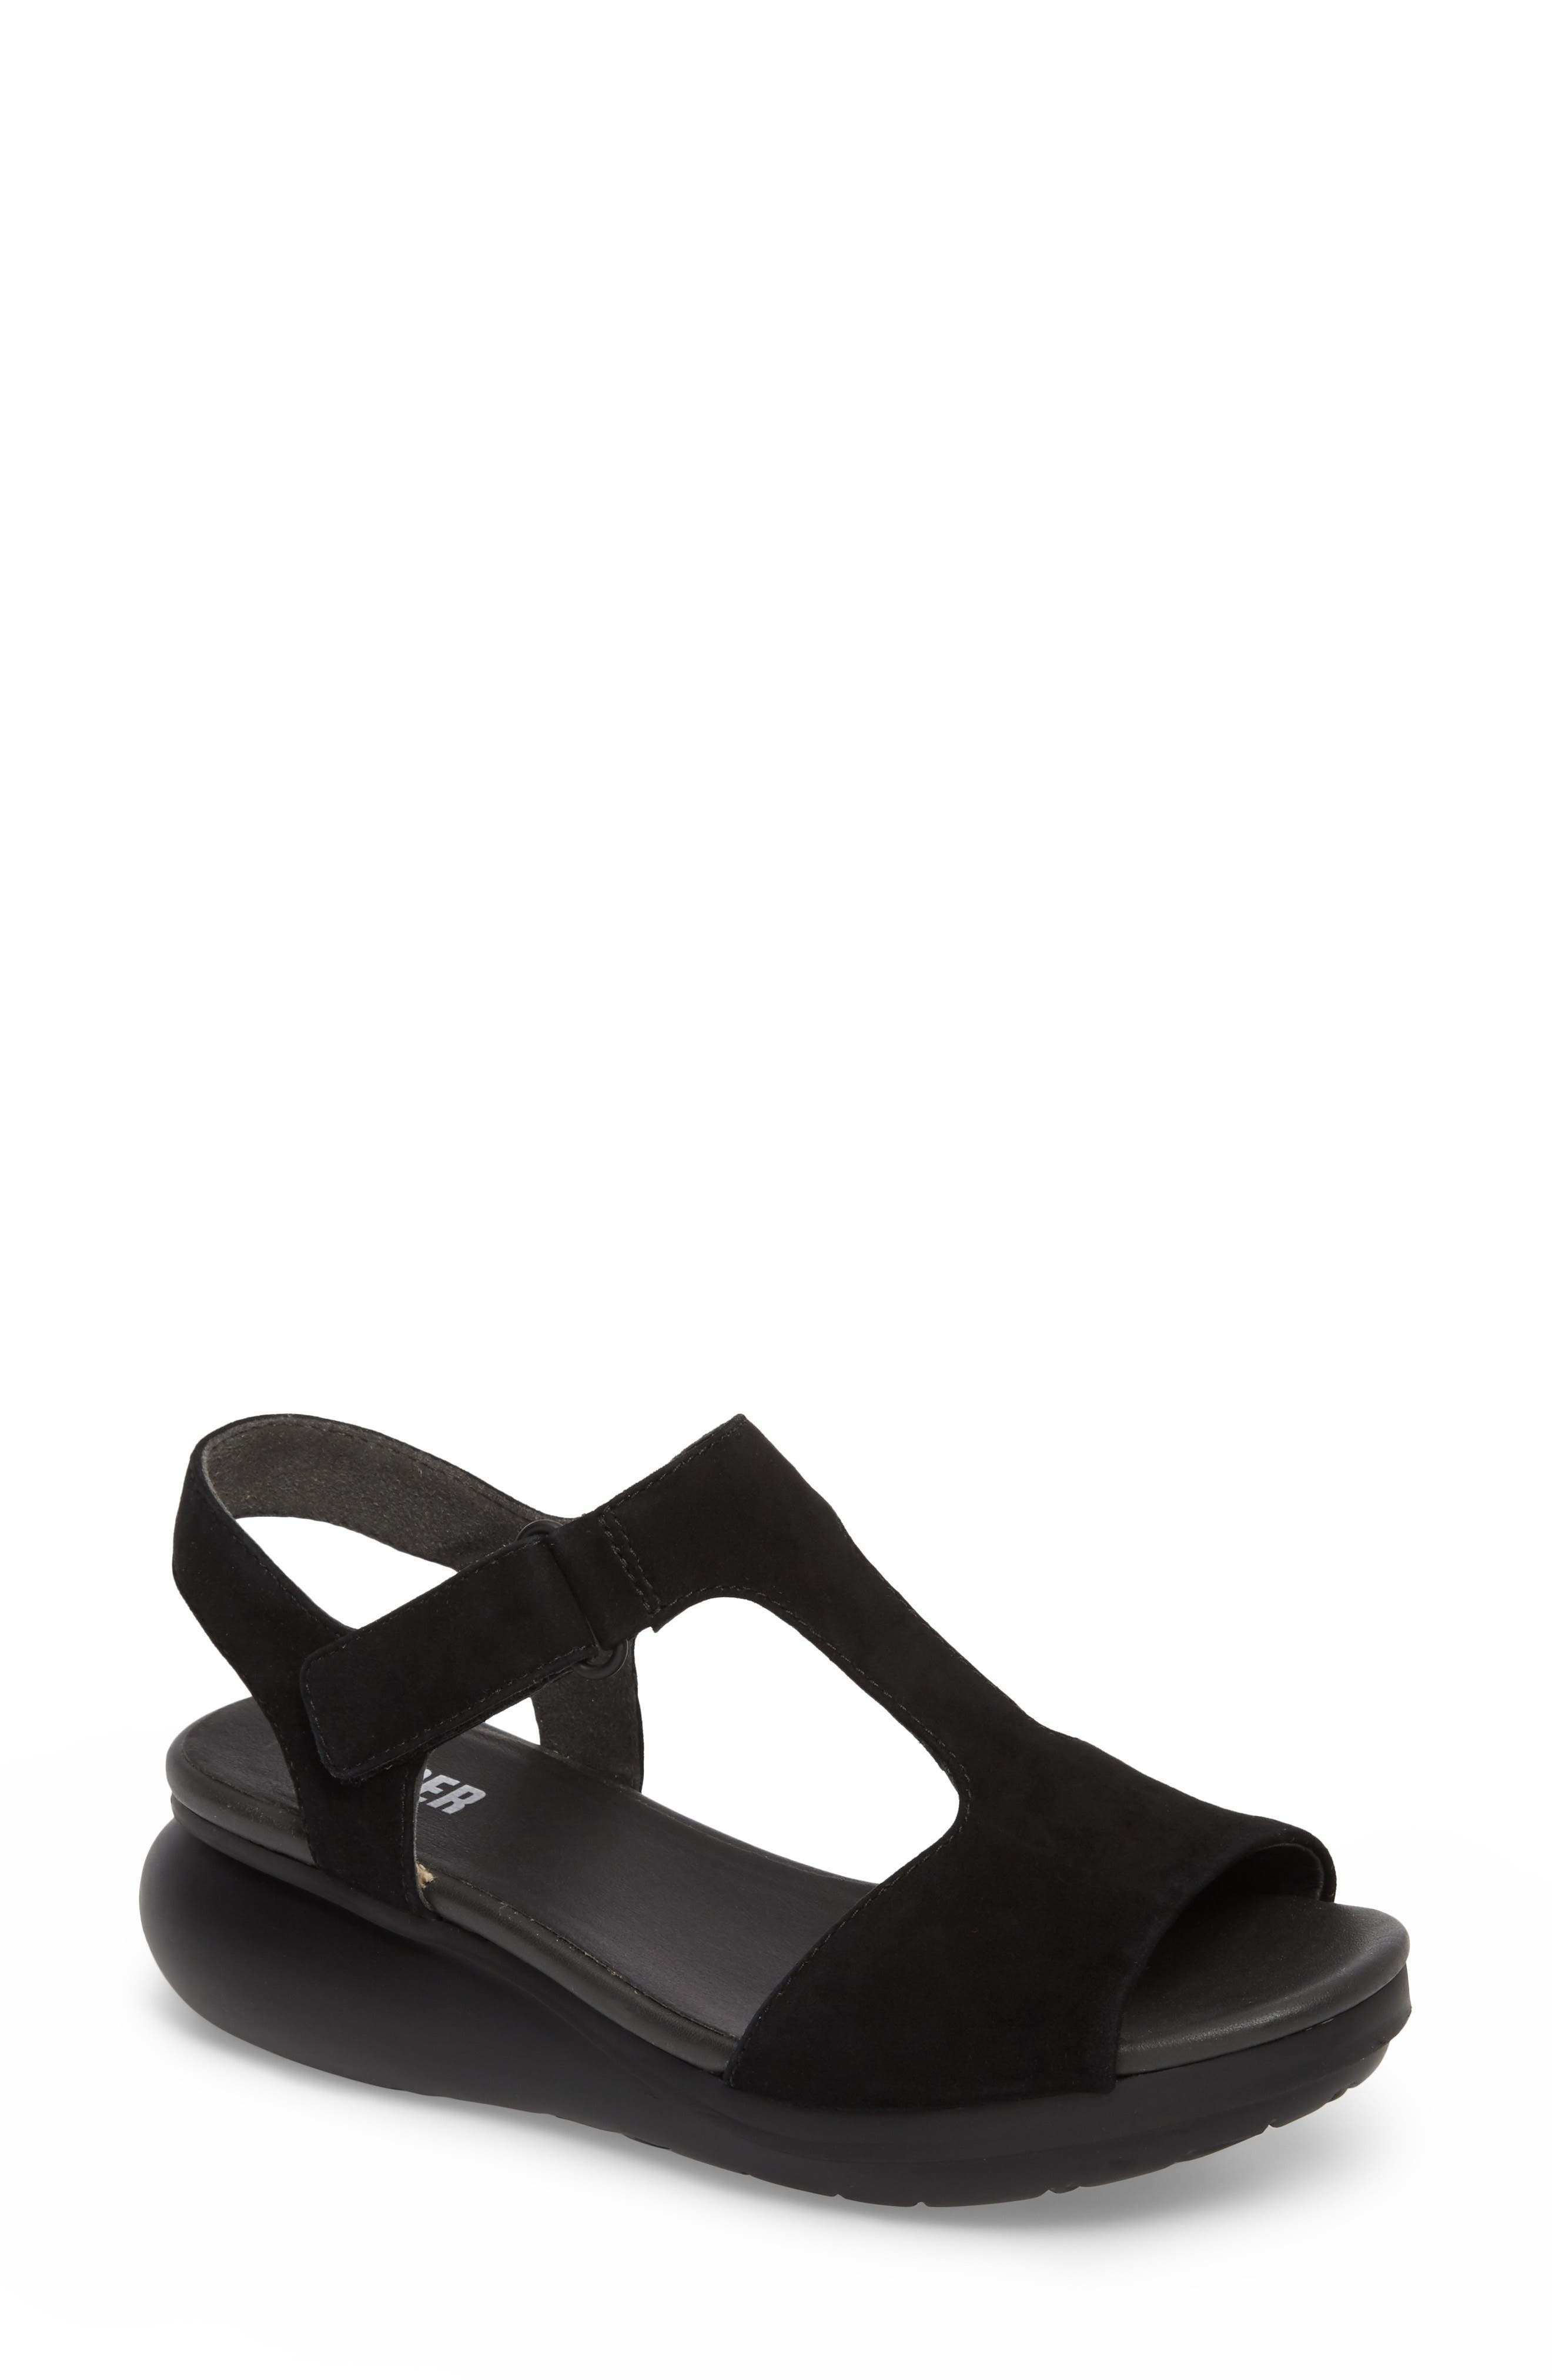 Balloon Wedge Sandal,                         Main,                         color, Black Suede